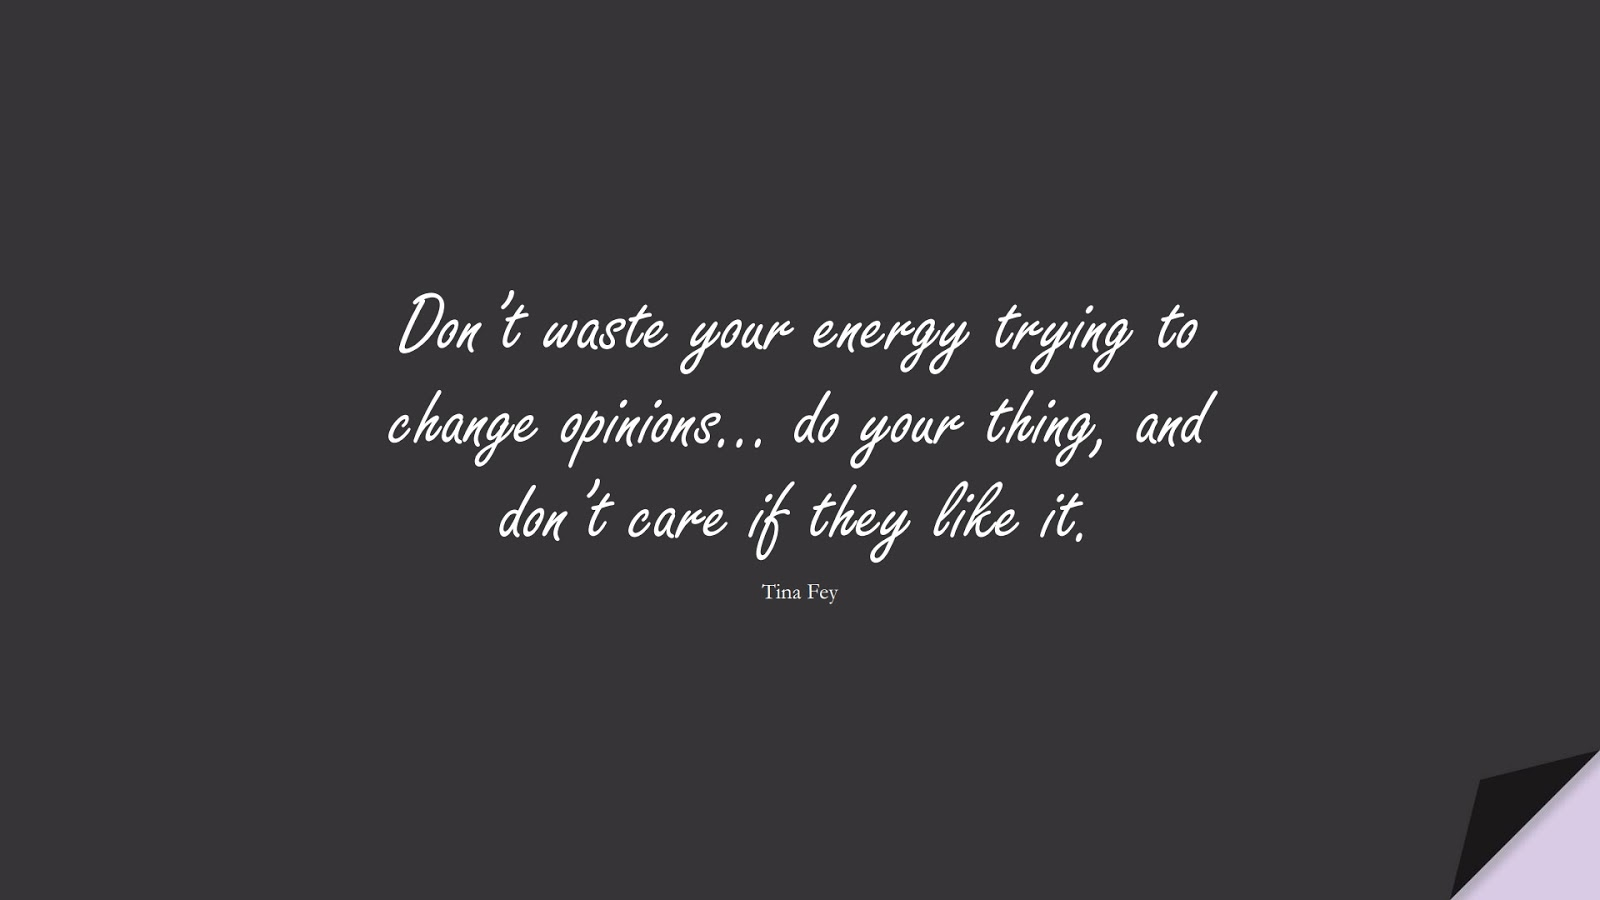 Don't waste your energy trying to change opinions… do your thing, and don't care if they like it. (Tina Fey);  #SelfEsteemQuotes